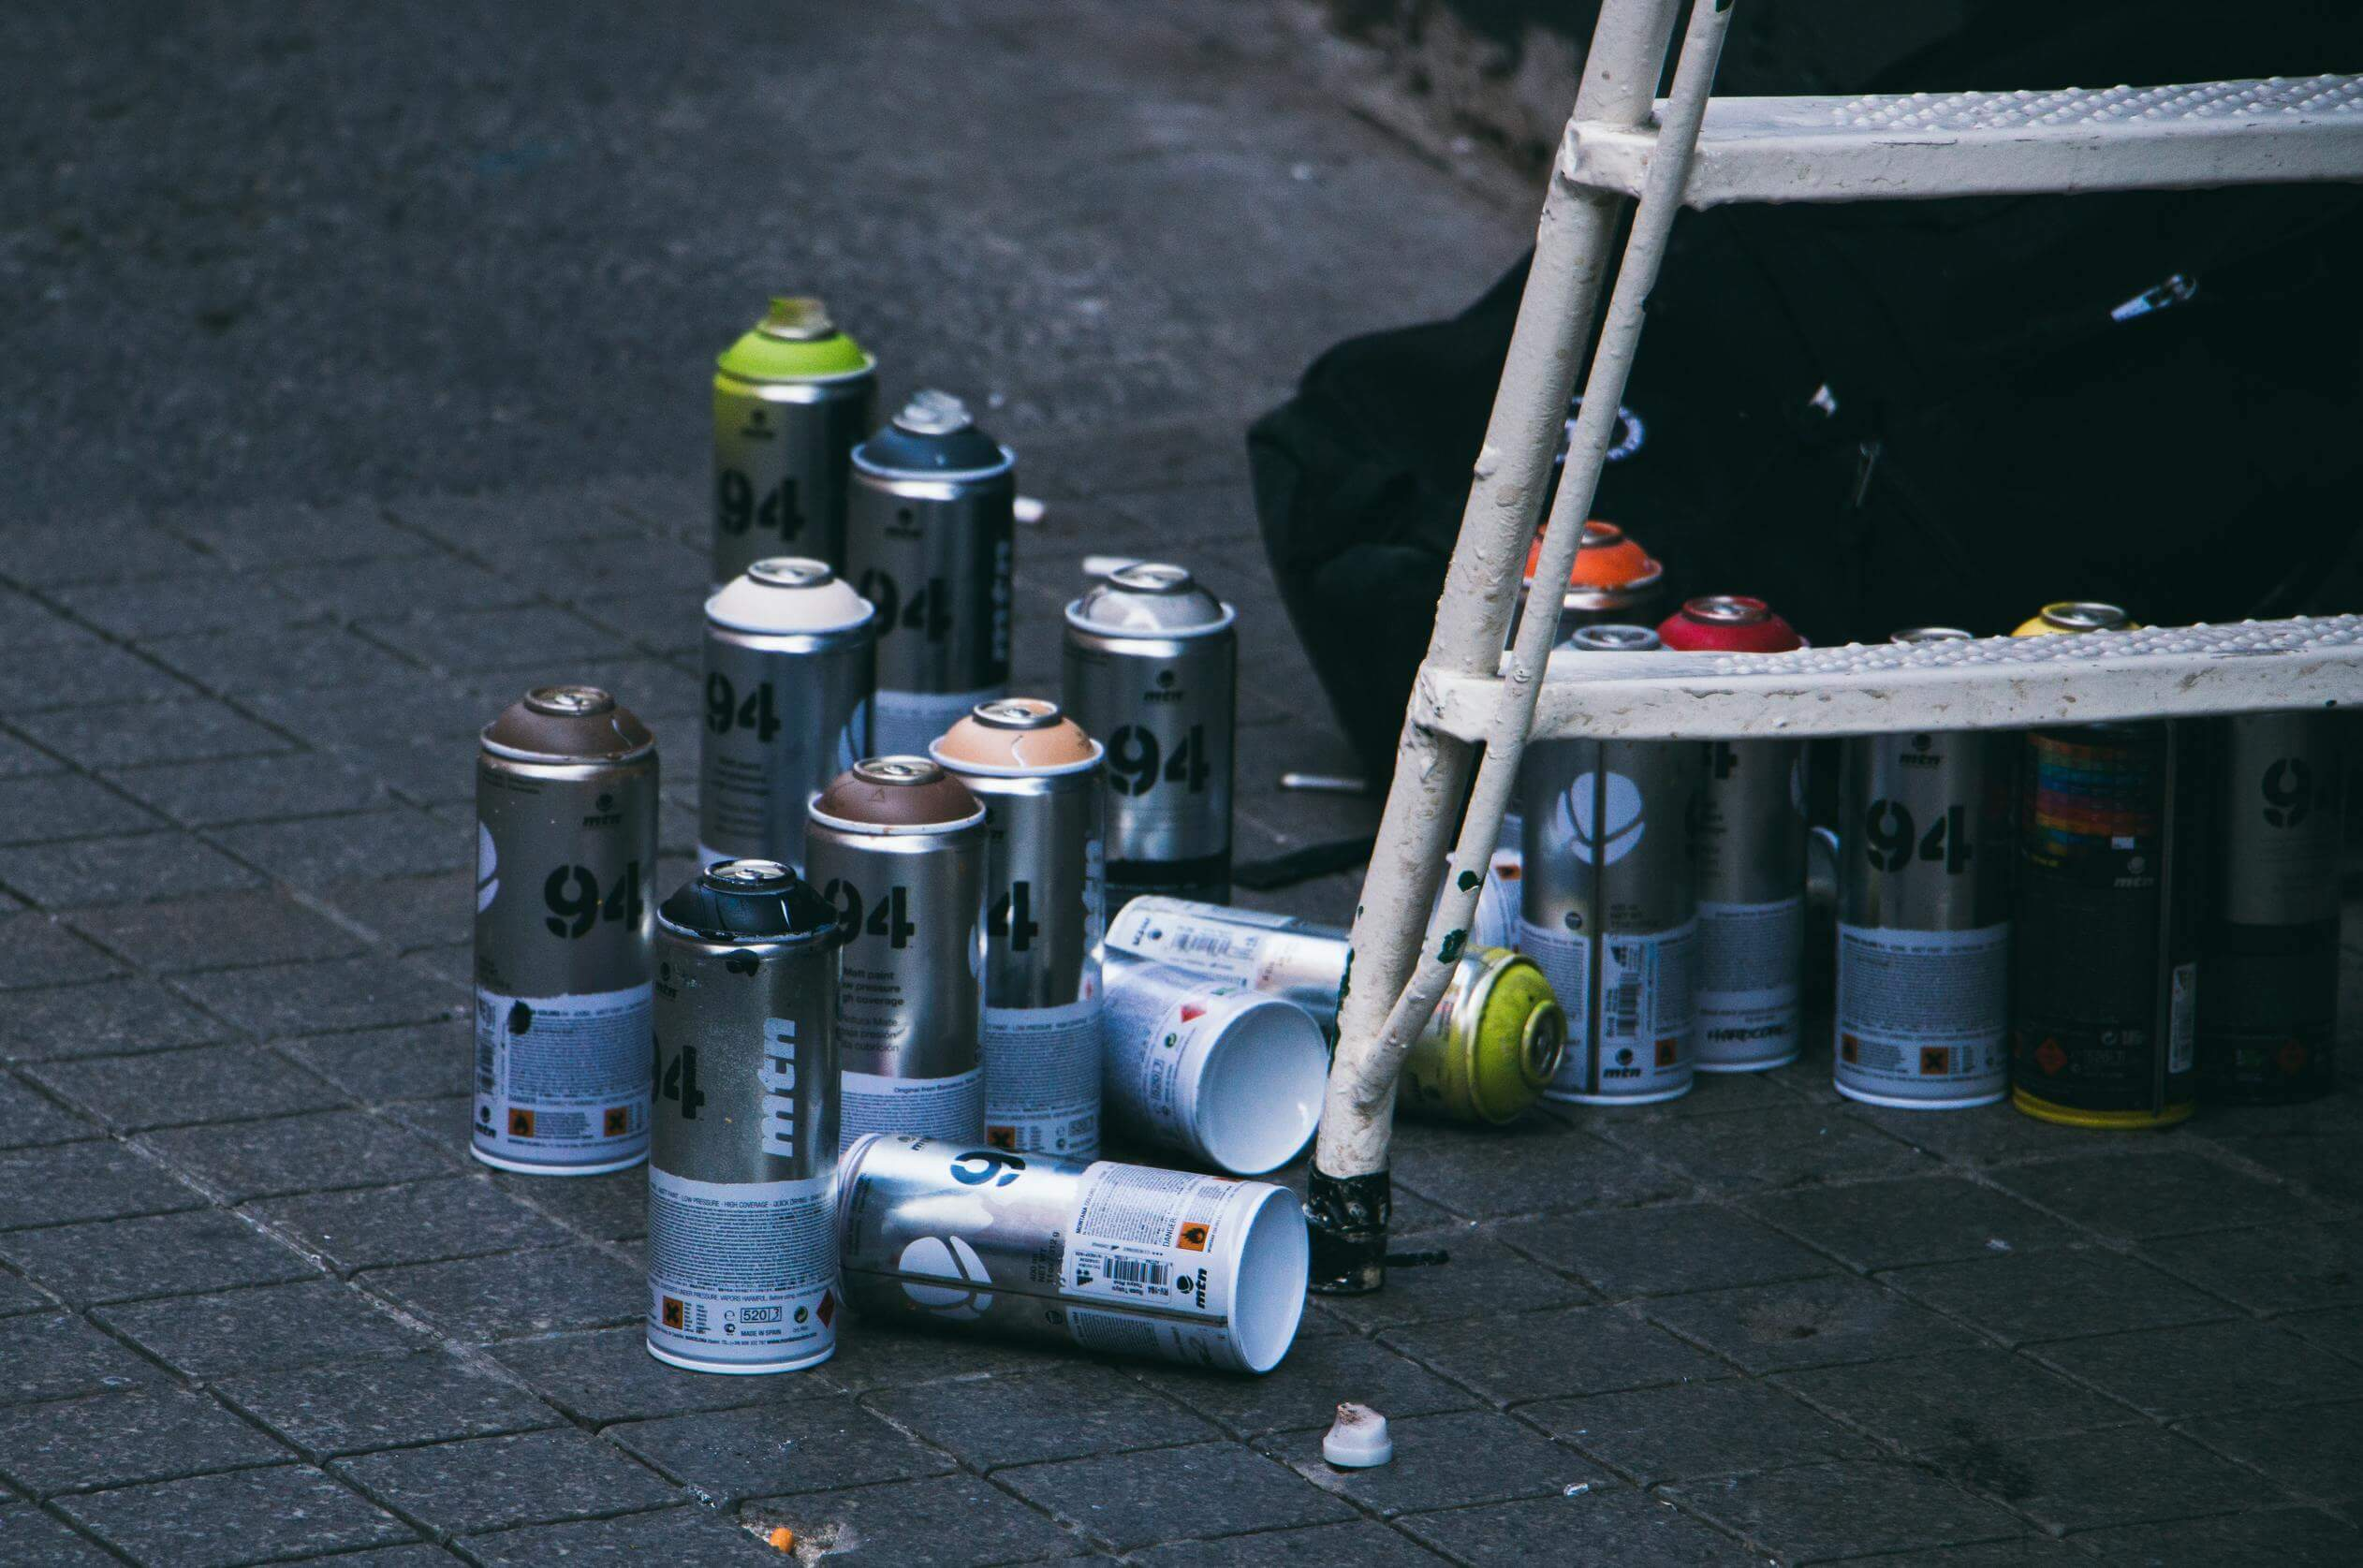 Spray cans with paint